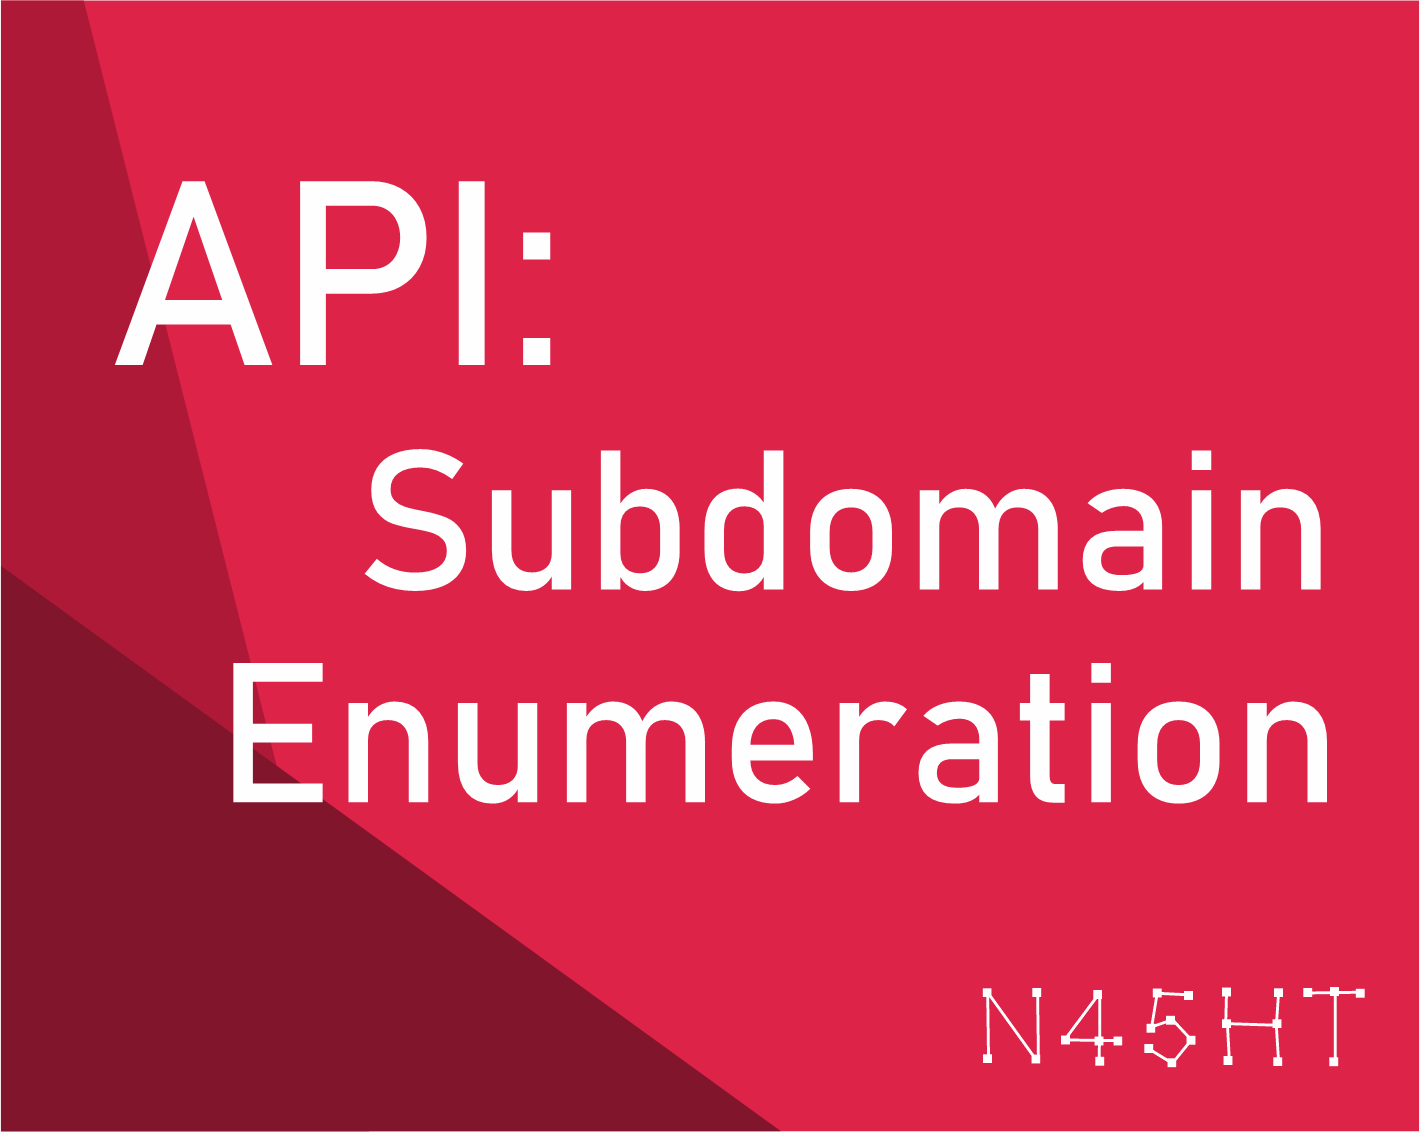 API: Subdomain Enumeration